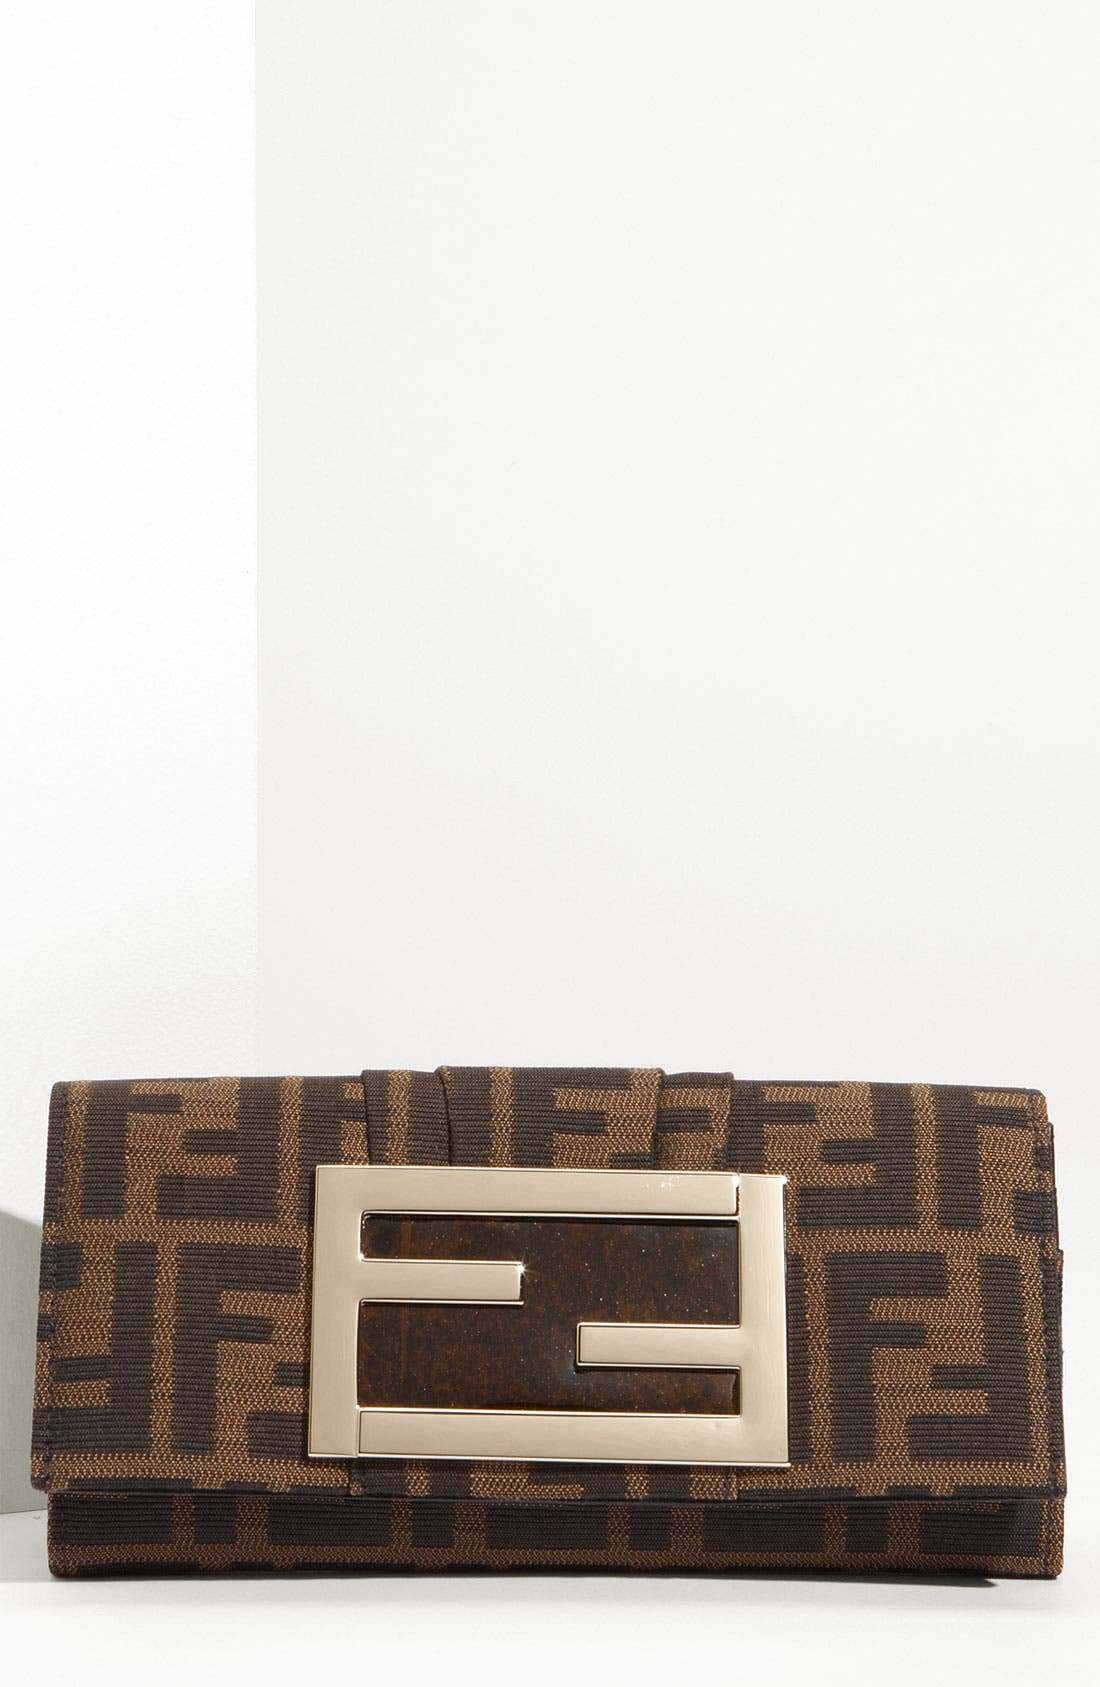 Alternate Image 1 Selected - Fendi 'Zucca Mia' Clutch Wallet